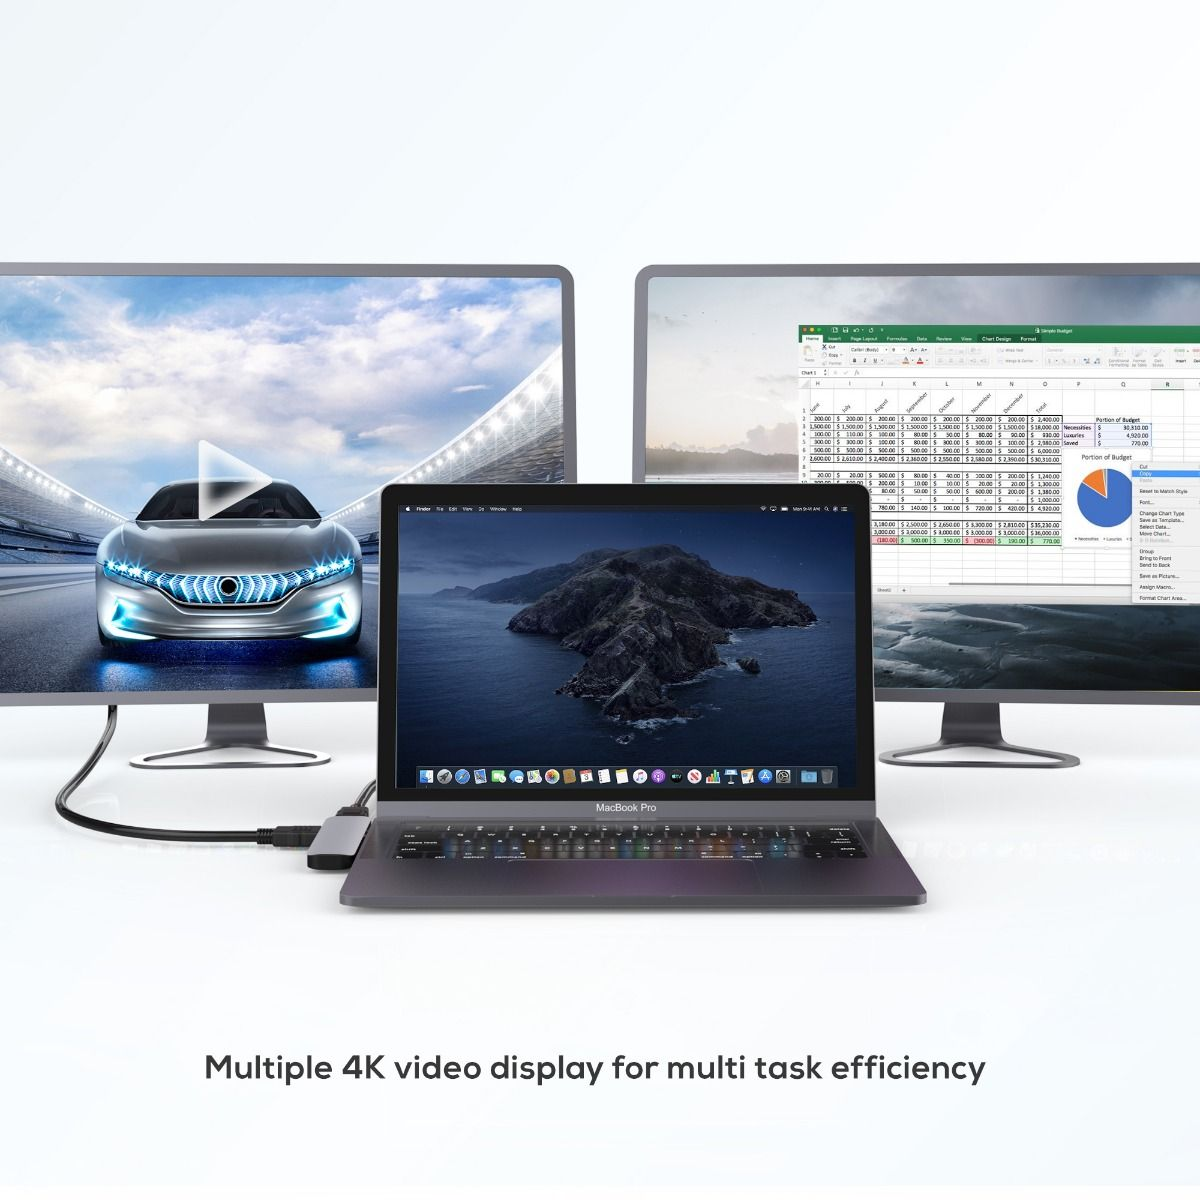 A large marketing image providing additional information about the product mBeat Elite Mini 6-in-1 USB-C Mobile Hub for Macbook Pro - Additional alt info not provided